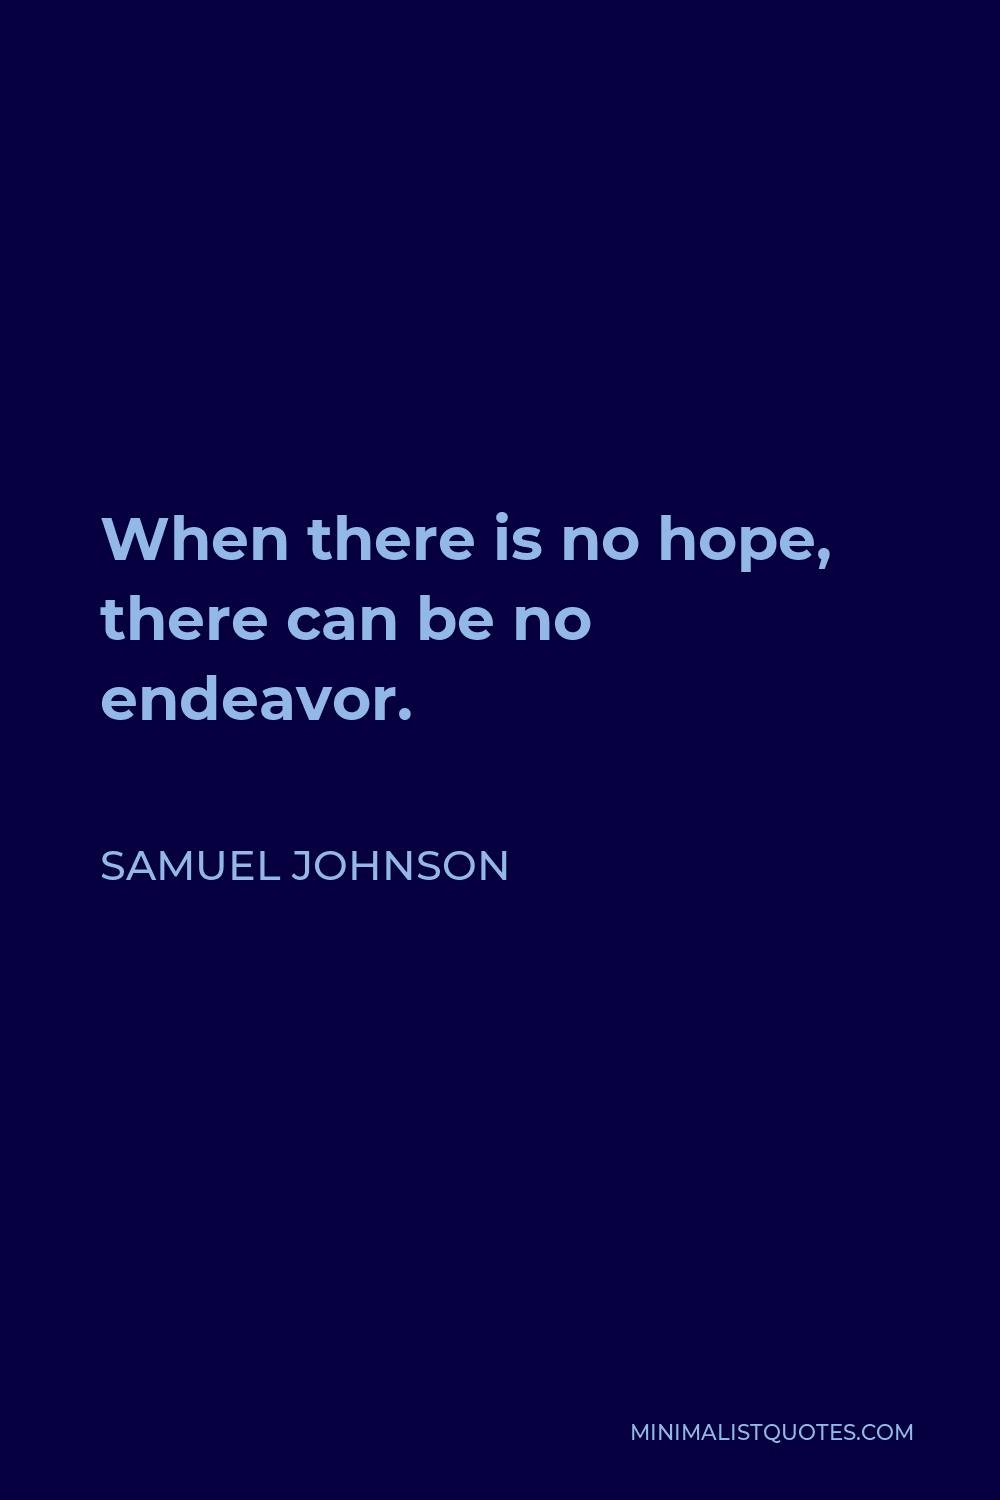 Samuel Johnson Quote - When there is no hope, there can be no endeavor.